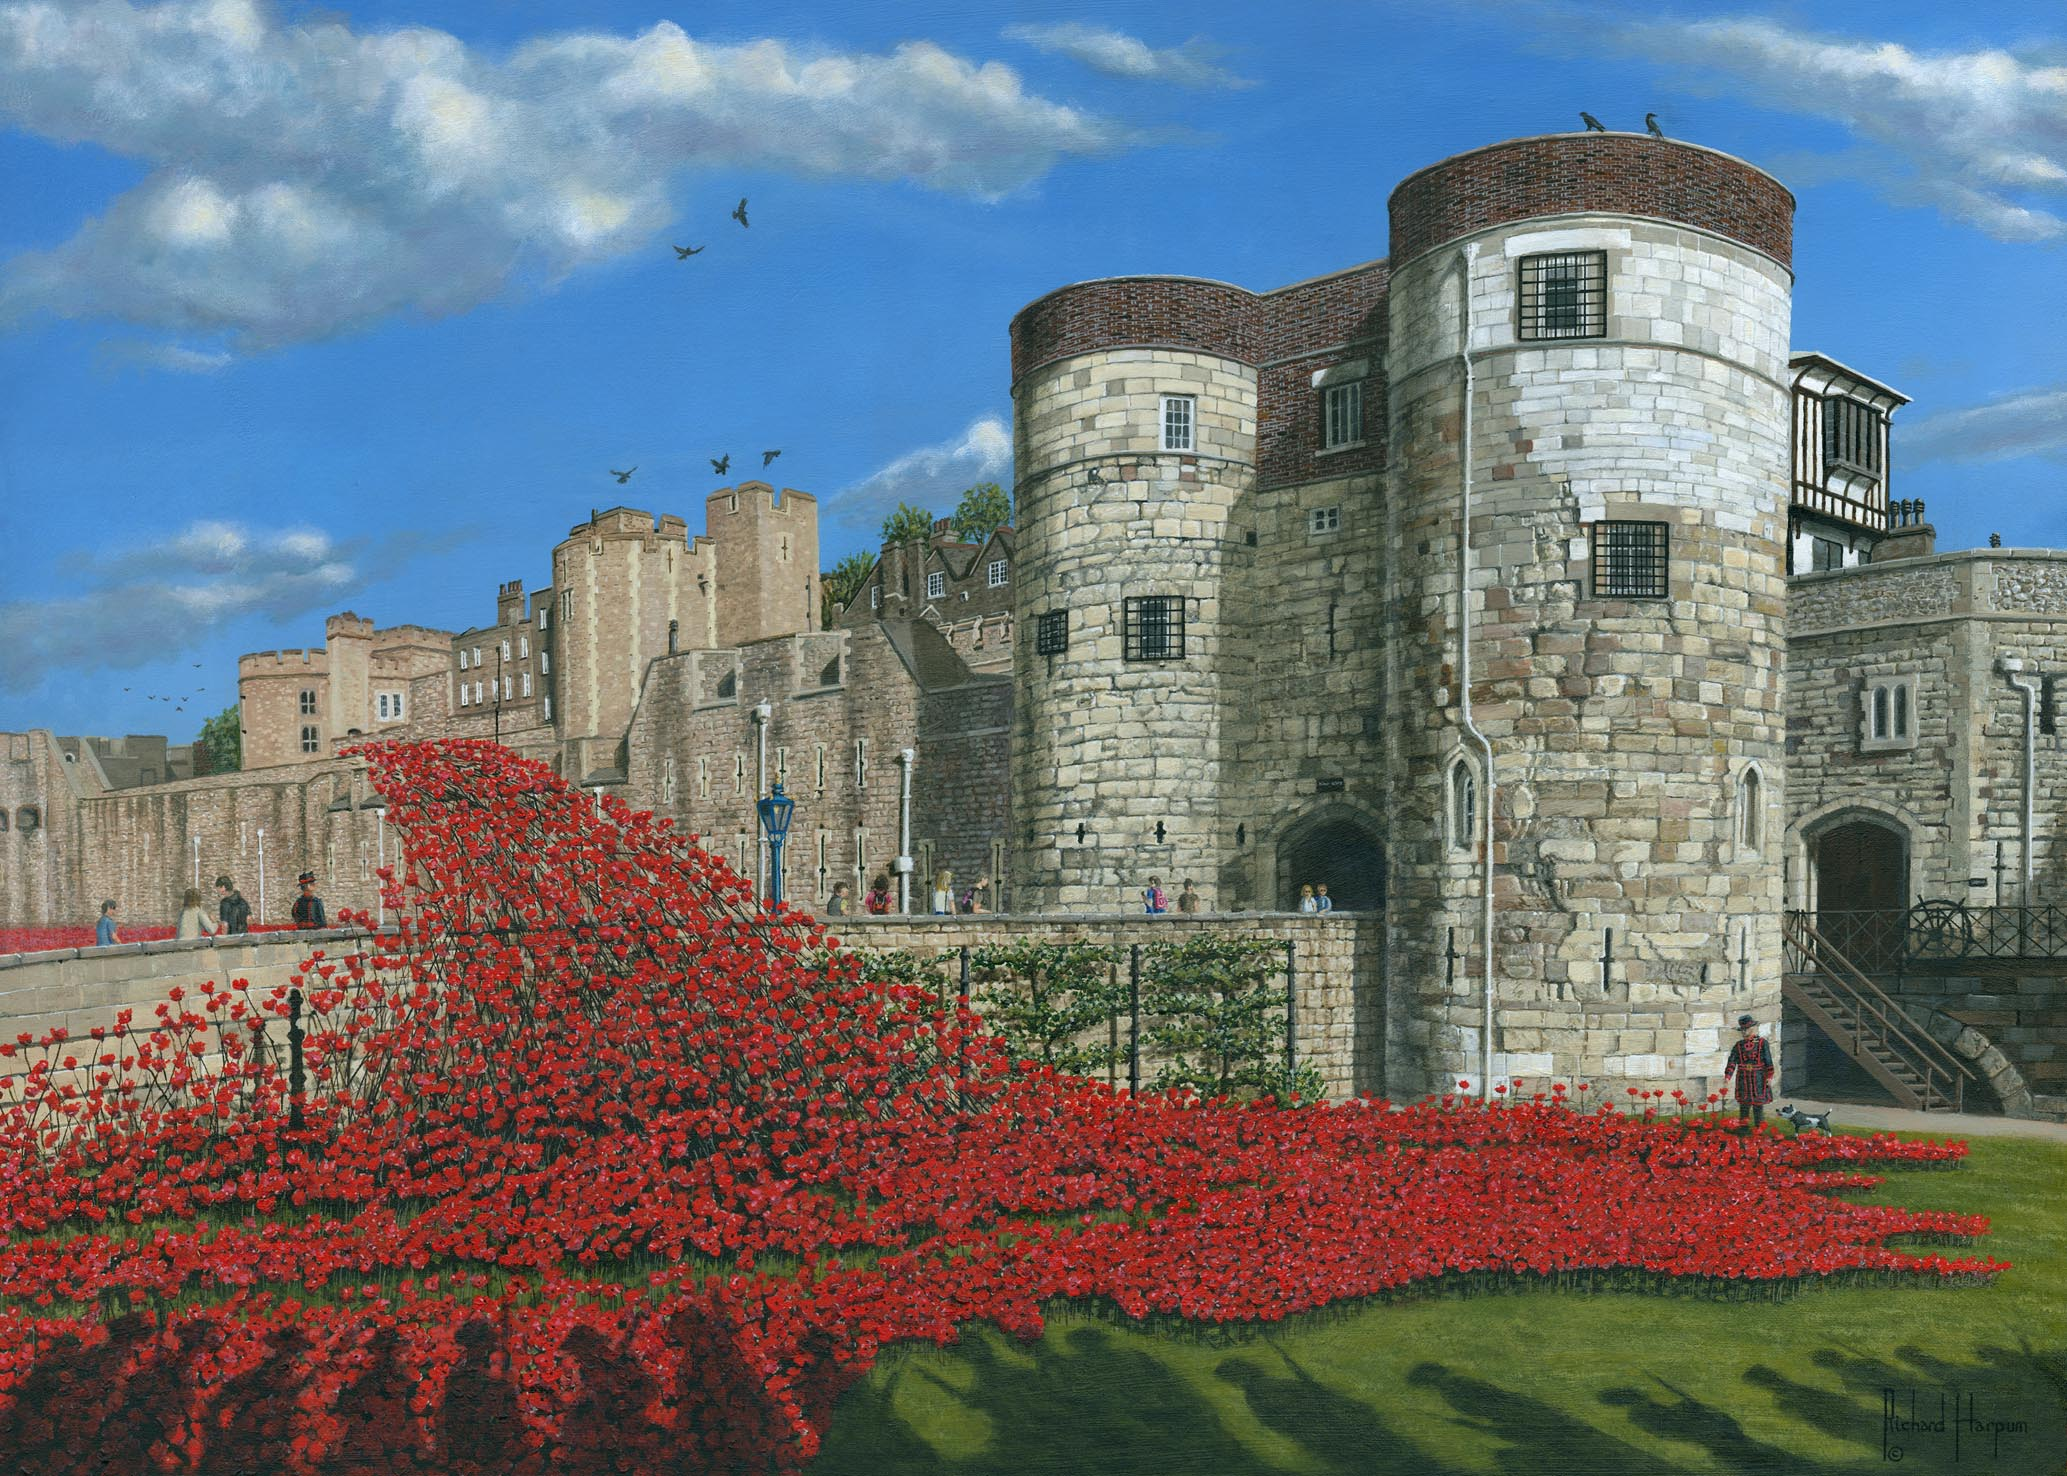 Painting - Tower of London Poppies - Blood Swept Lands and Seas of Red